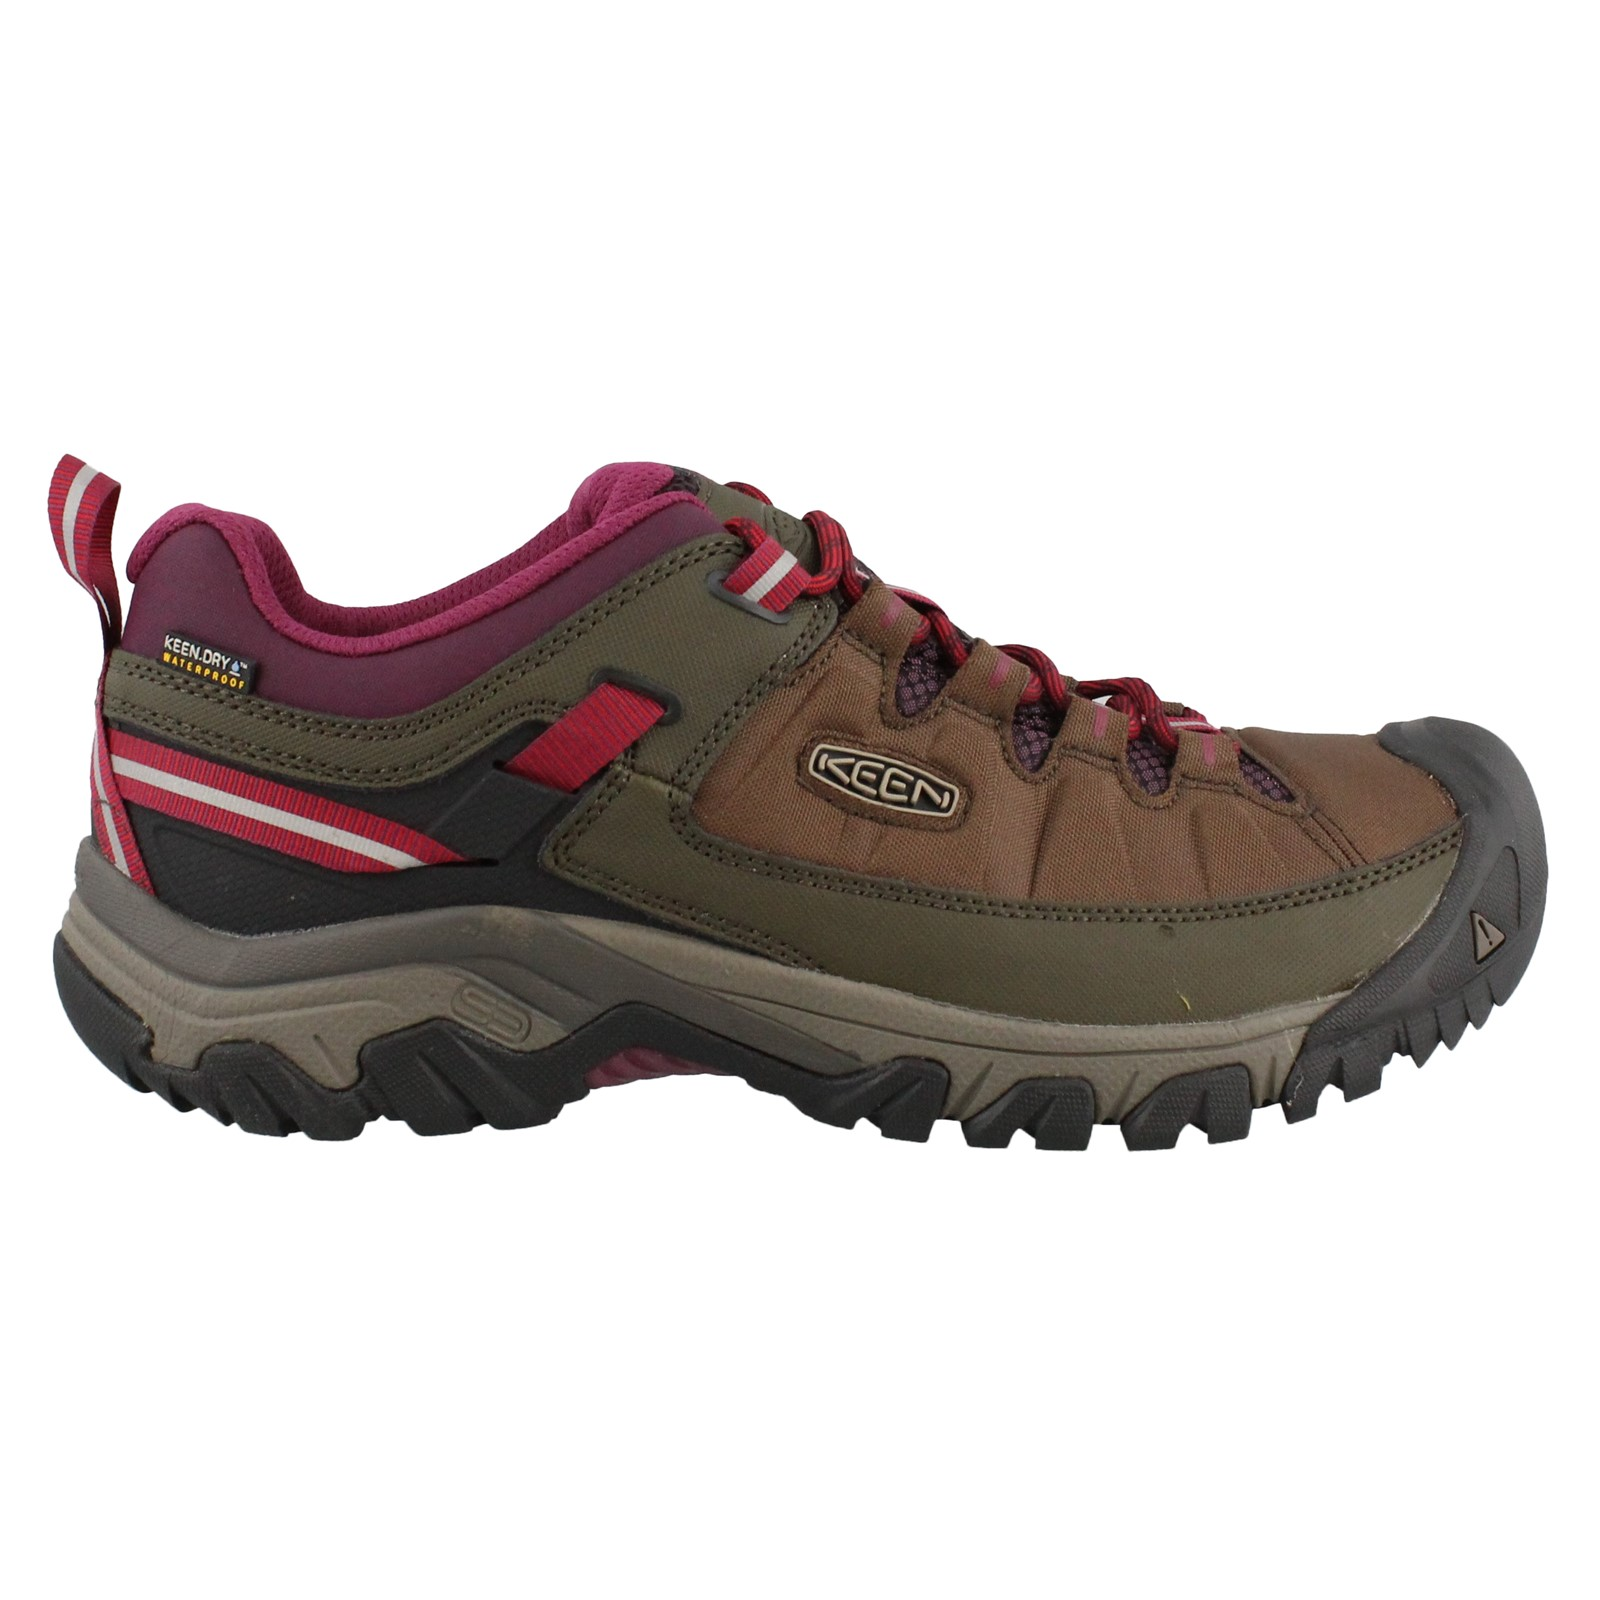 Women's Keen, Targhee Exp Low Waterproof Hiking Shoes